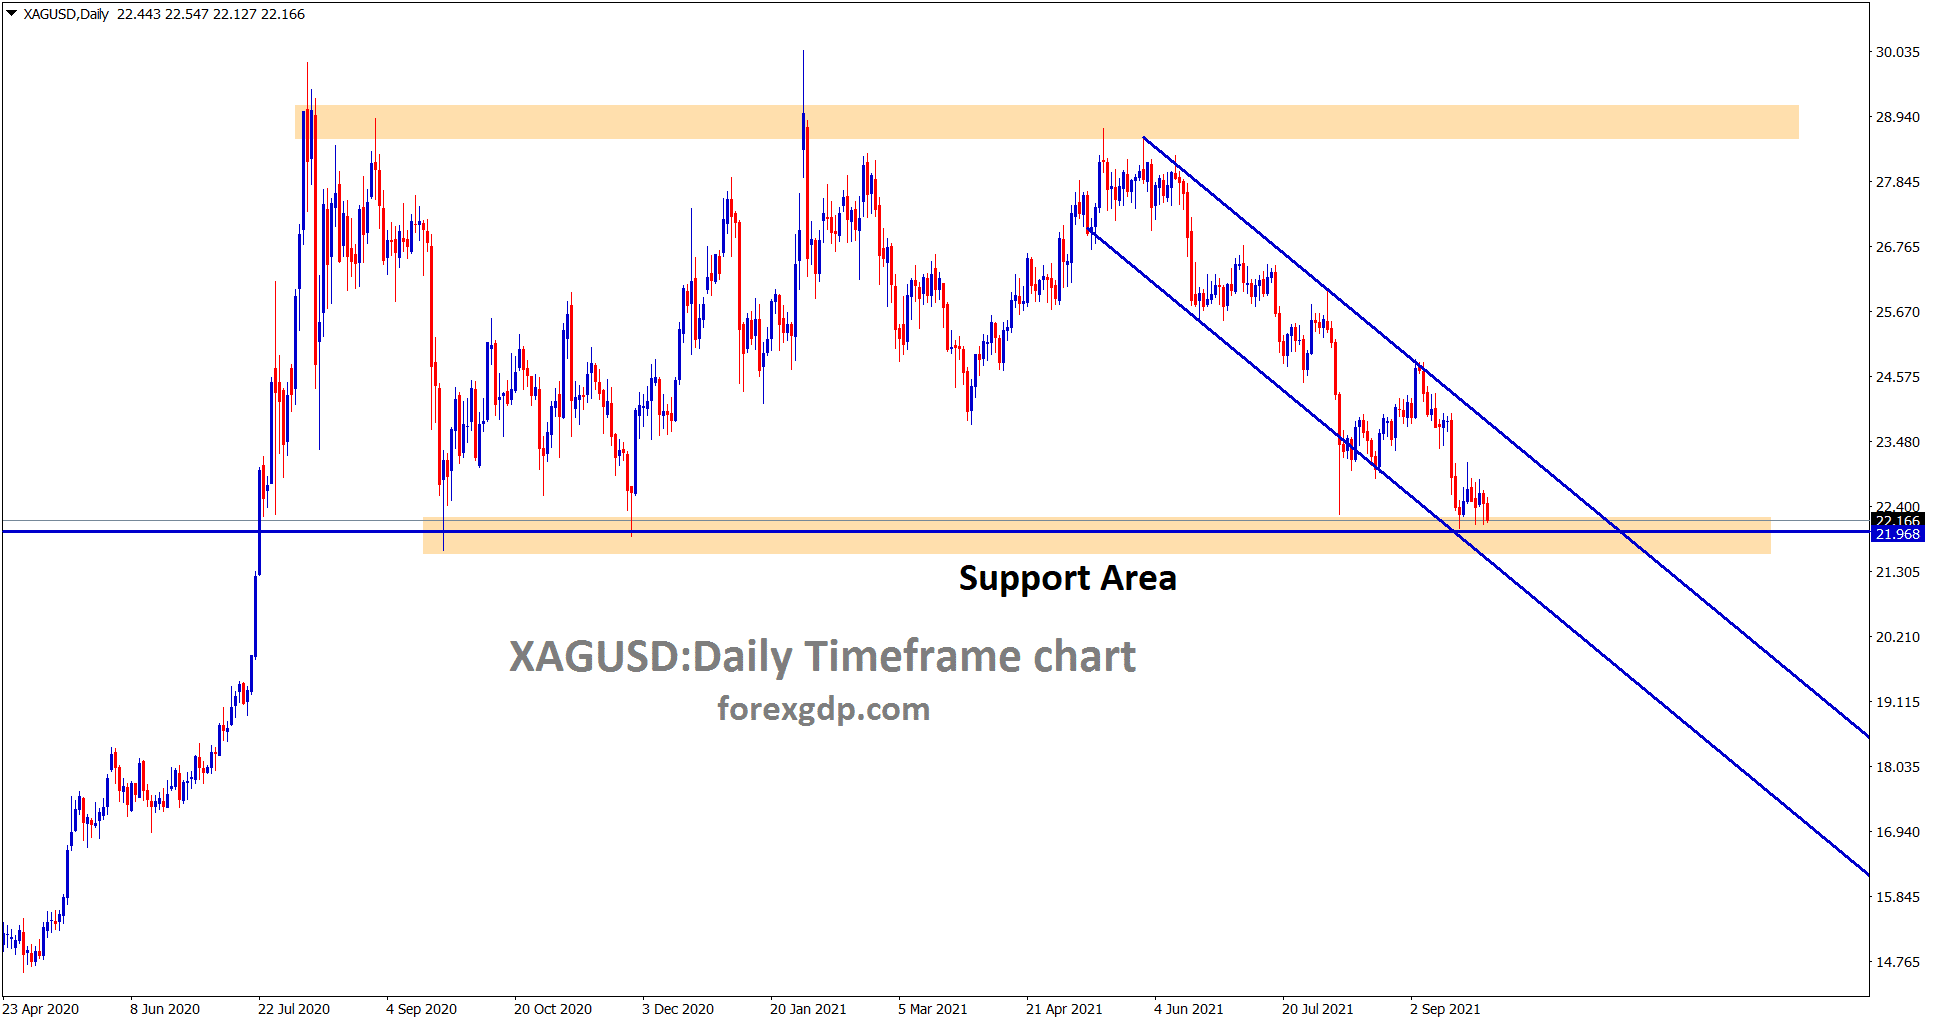 Silver is consolidating at the support area wait for breakout or reversal